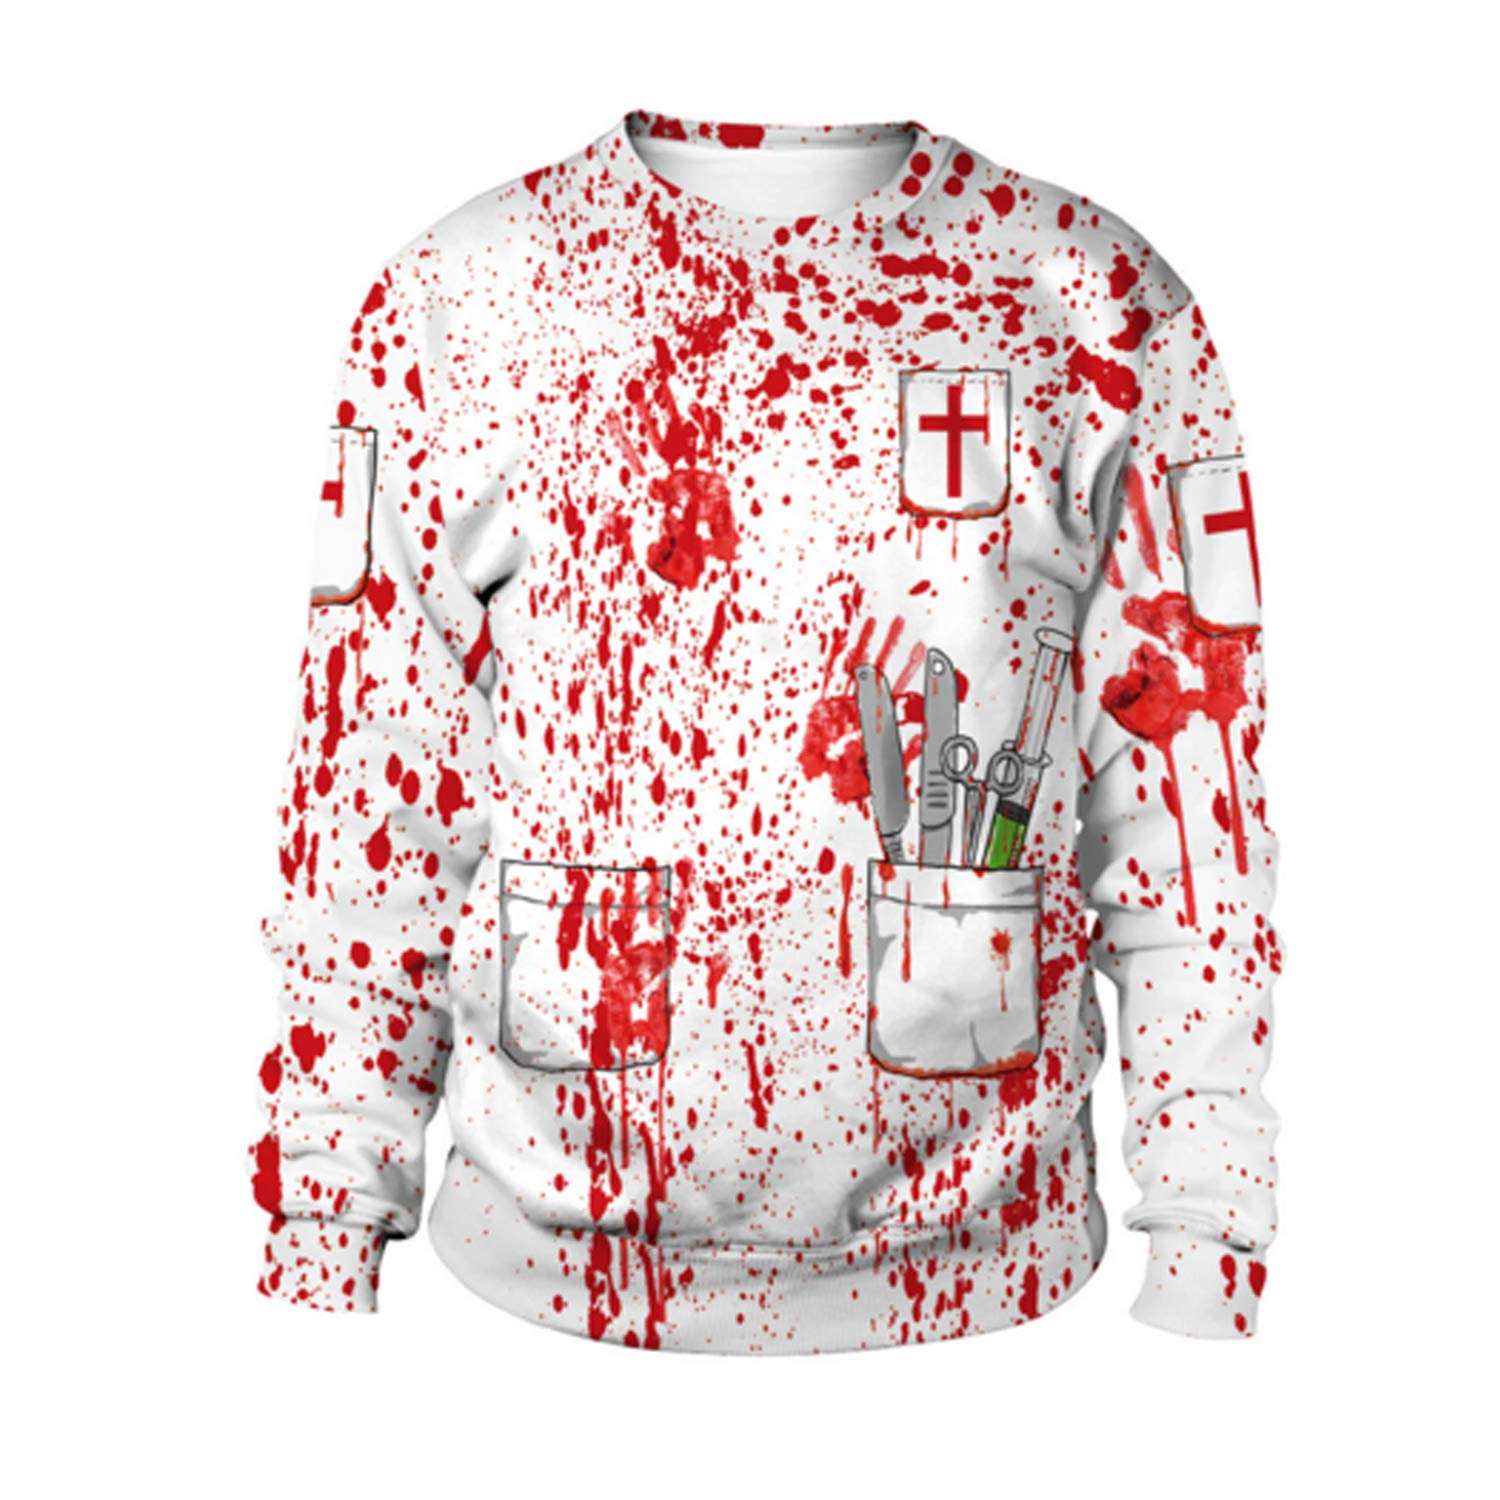 BoToKiNo Cheap Scary Halloween Hoodies Sweatshirts for Women and Men